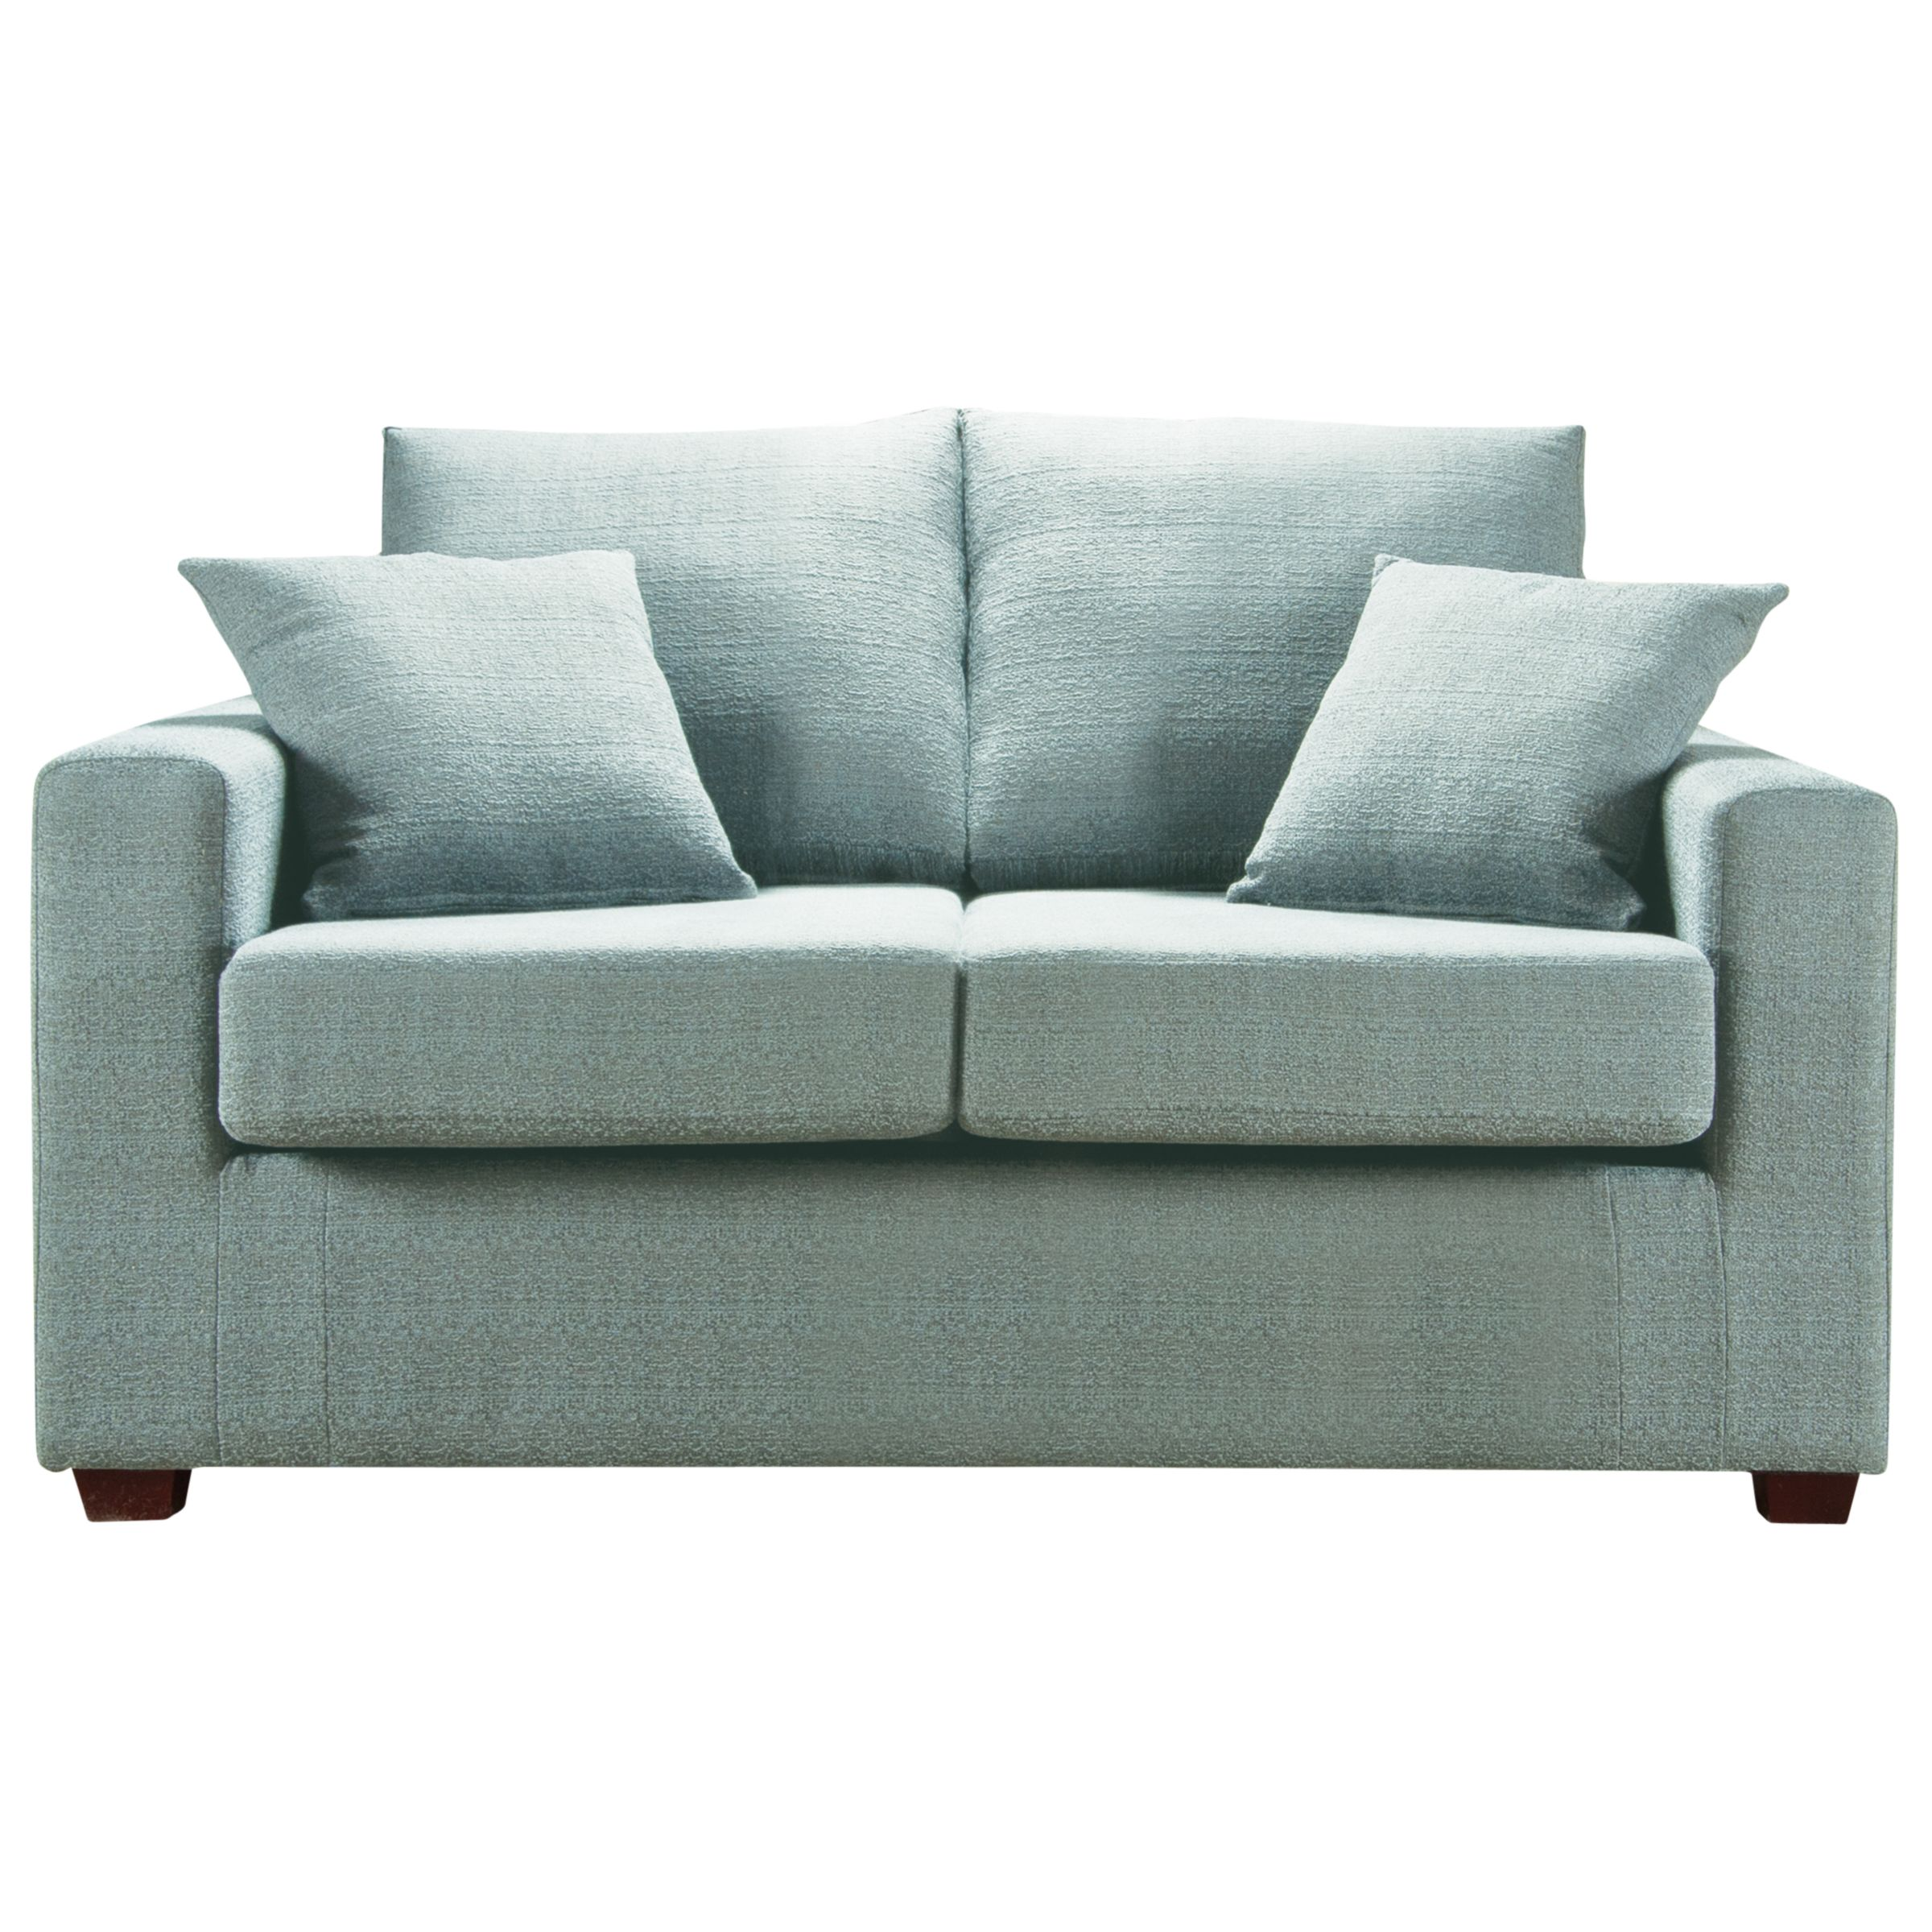 John lewis ravel small sofa bed glacier review compare for Sofa bed uk john lewis